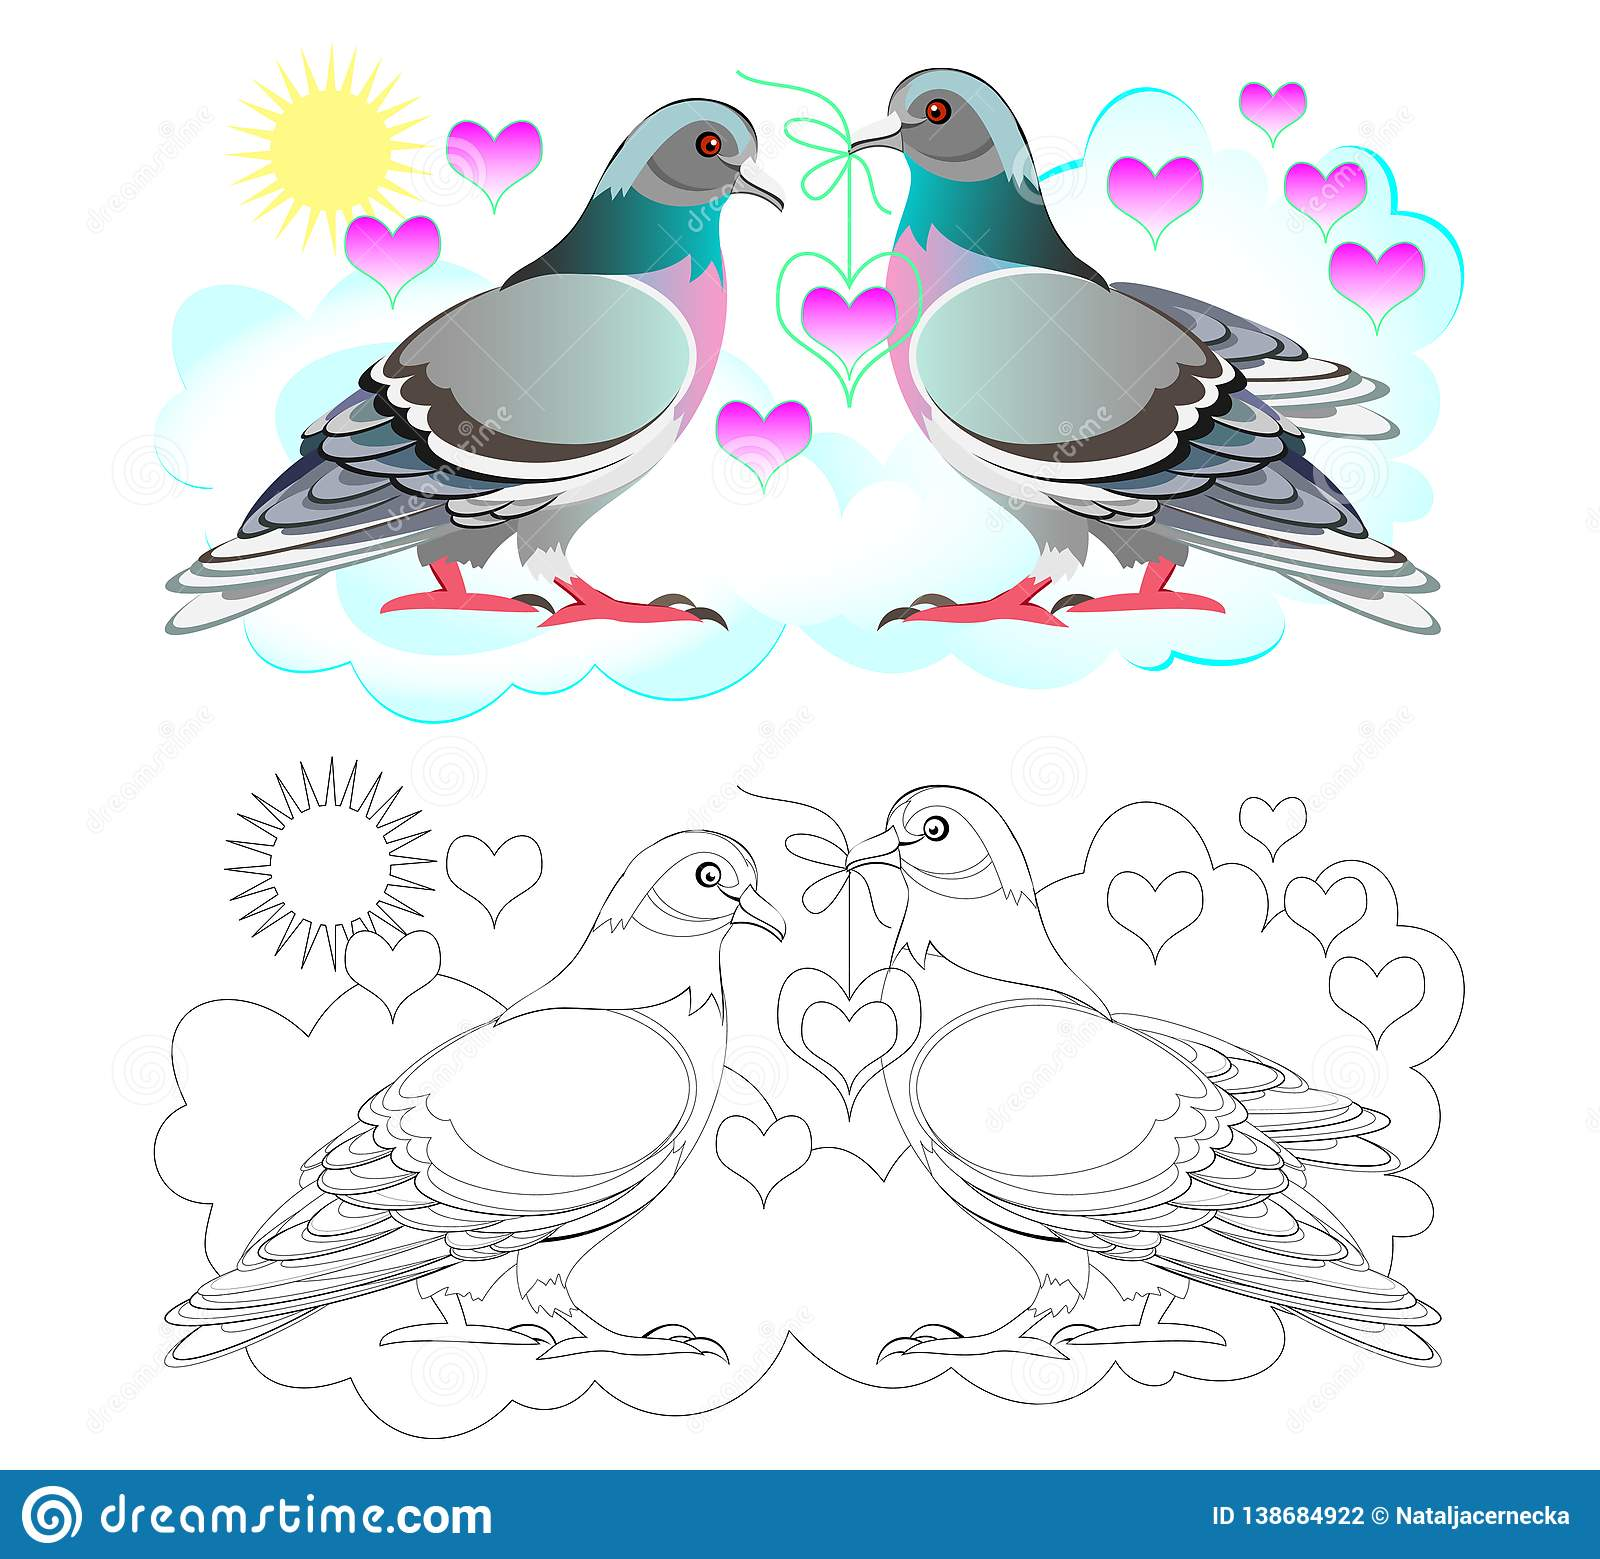 Fantasy Illustration Of Couple Cute Pigeons Colorful And